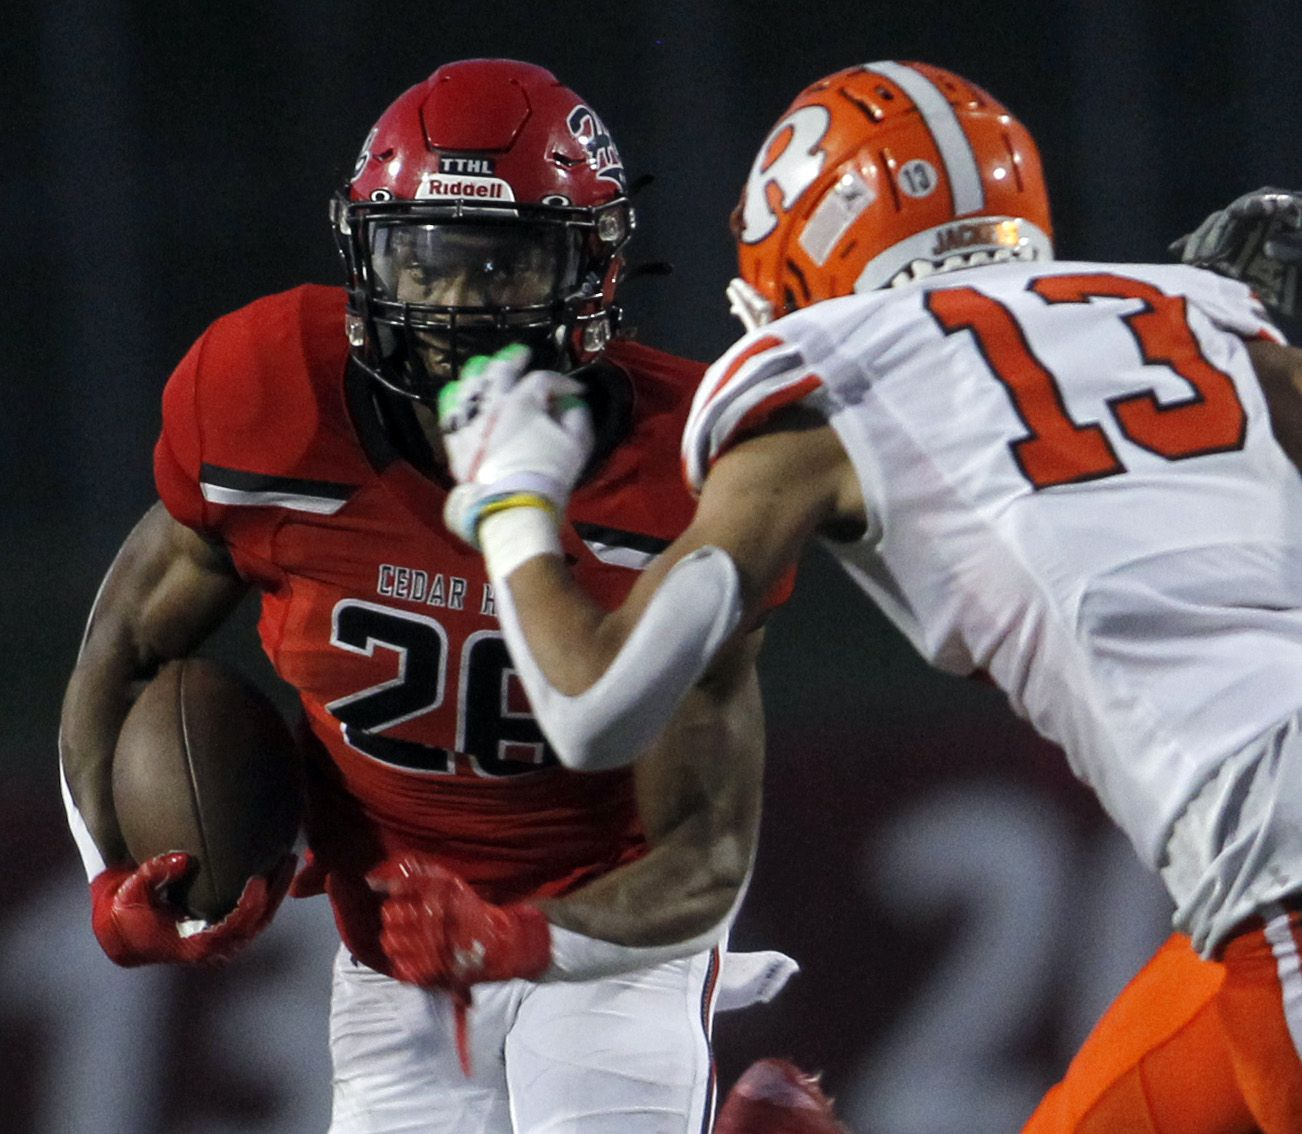 Cedar Hill running back Jaylen Jenkins (26), left, eyes the defense of Rockwall cornerback Cadien Robinson (13) before cutting to the outside enroute to a 55-yard rushing touchdown during first half action. The two teams played their season opening football game at Longhorn Stadium in Cedar Hill on August 27, 2021. (Steve Hamm/ Special Contributor)